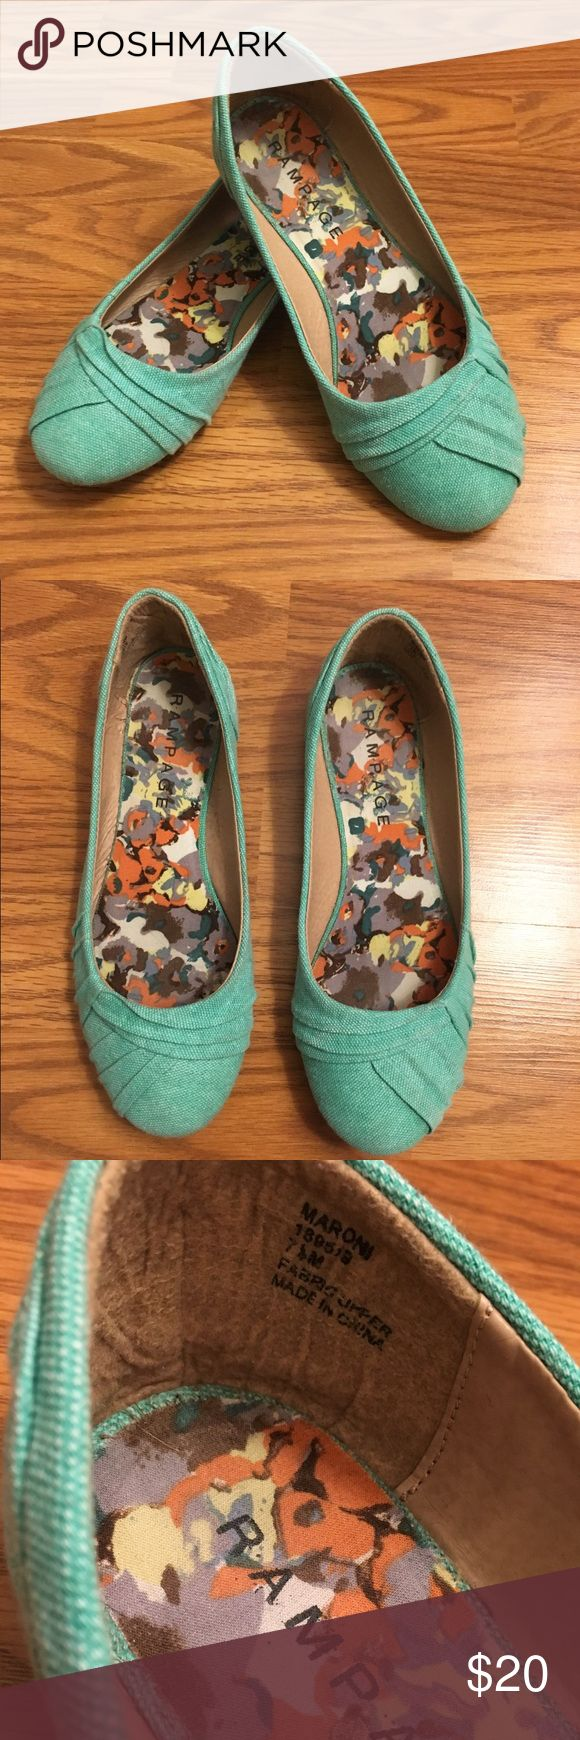 Rampage Maroni Flats, Teal, Size 7.5 Rampage Maroni Teal Flats! They are a women's size 7.5 and have hardly been worn. Feel free to ask questions. Reasonable offers welcome.  Rampage Shoes Flats & Loafers